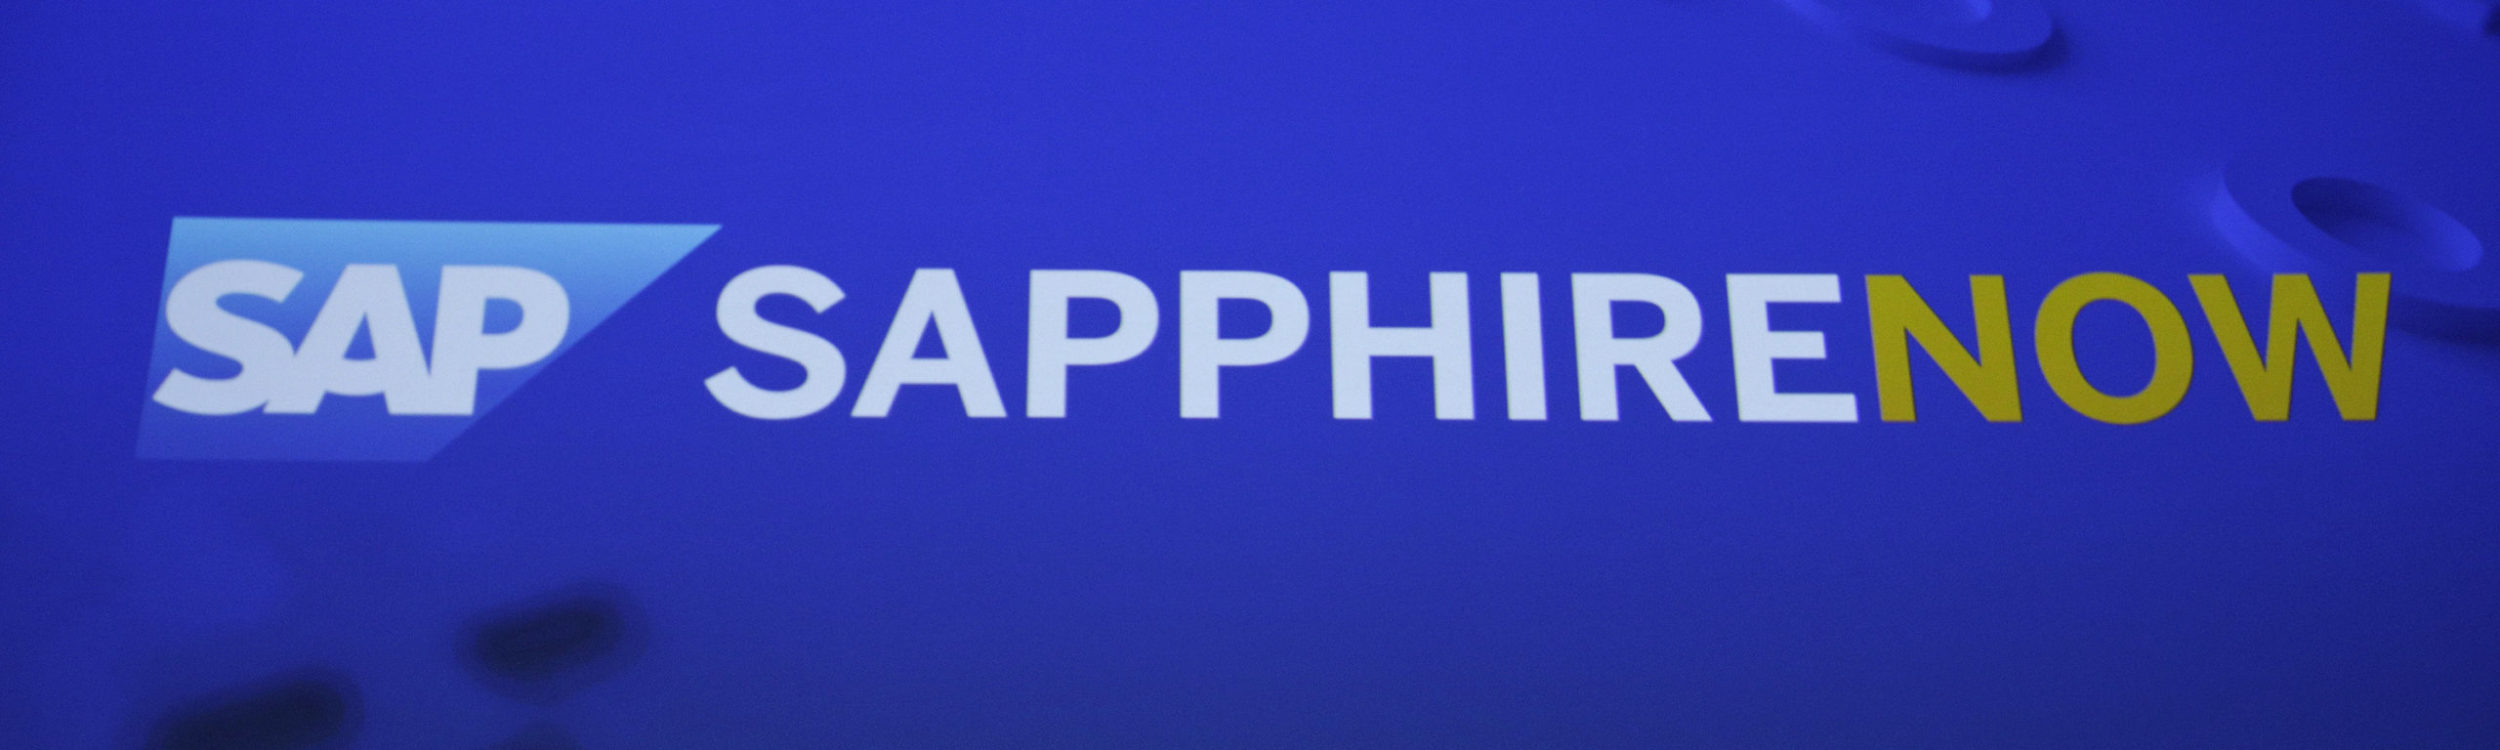 Top 5 HCM Takeaways from SAPPHIRE NOW Reimagined 2020 featured image